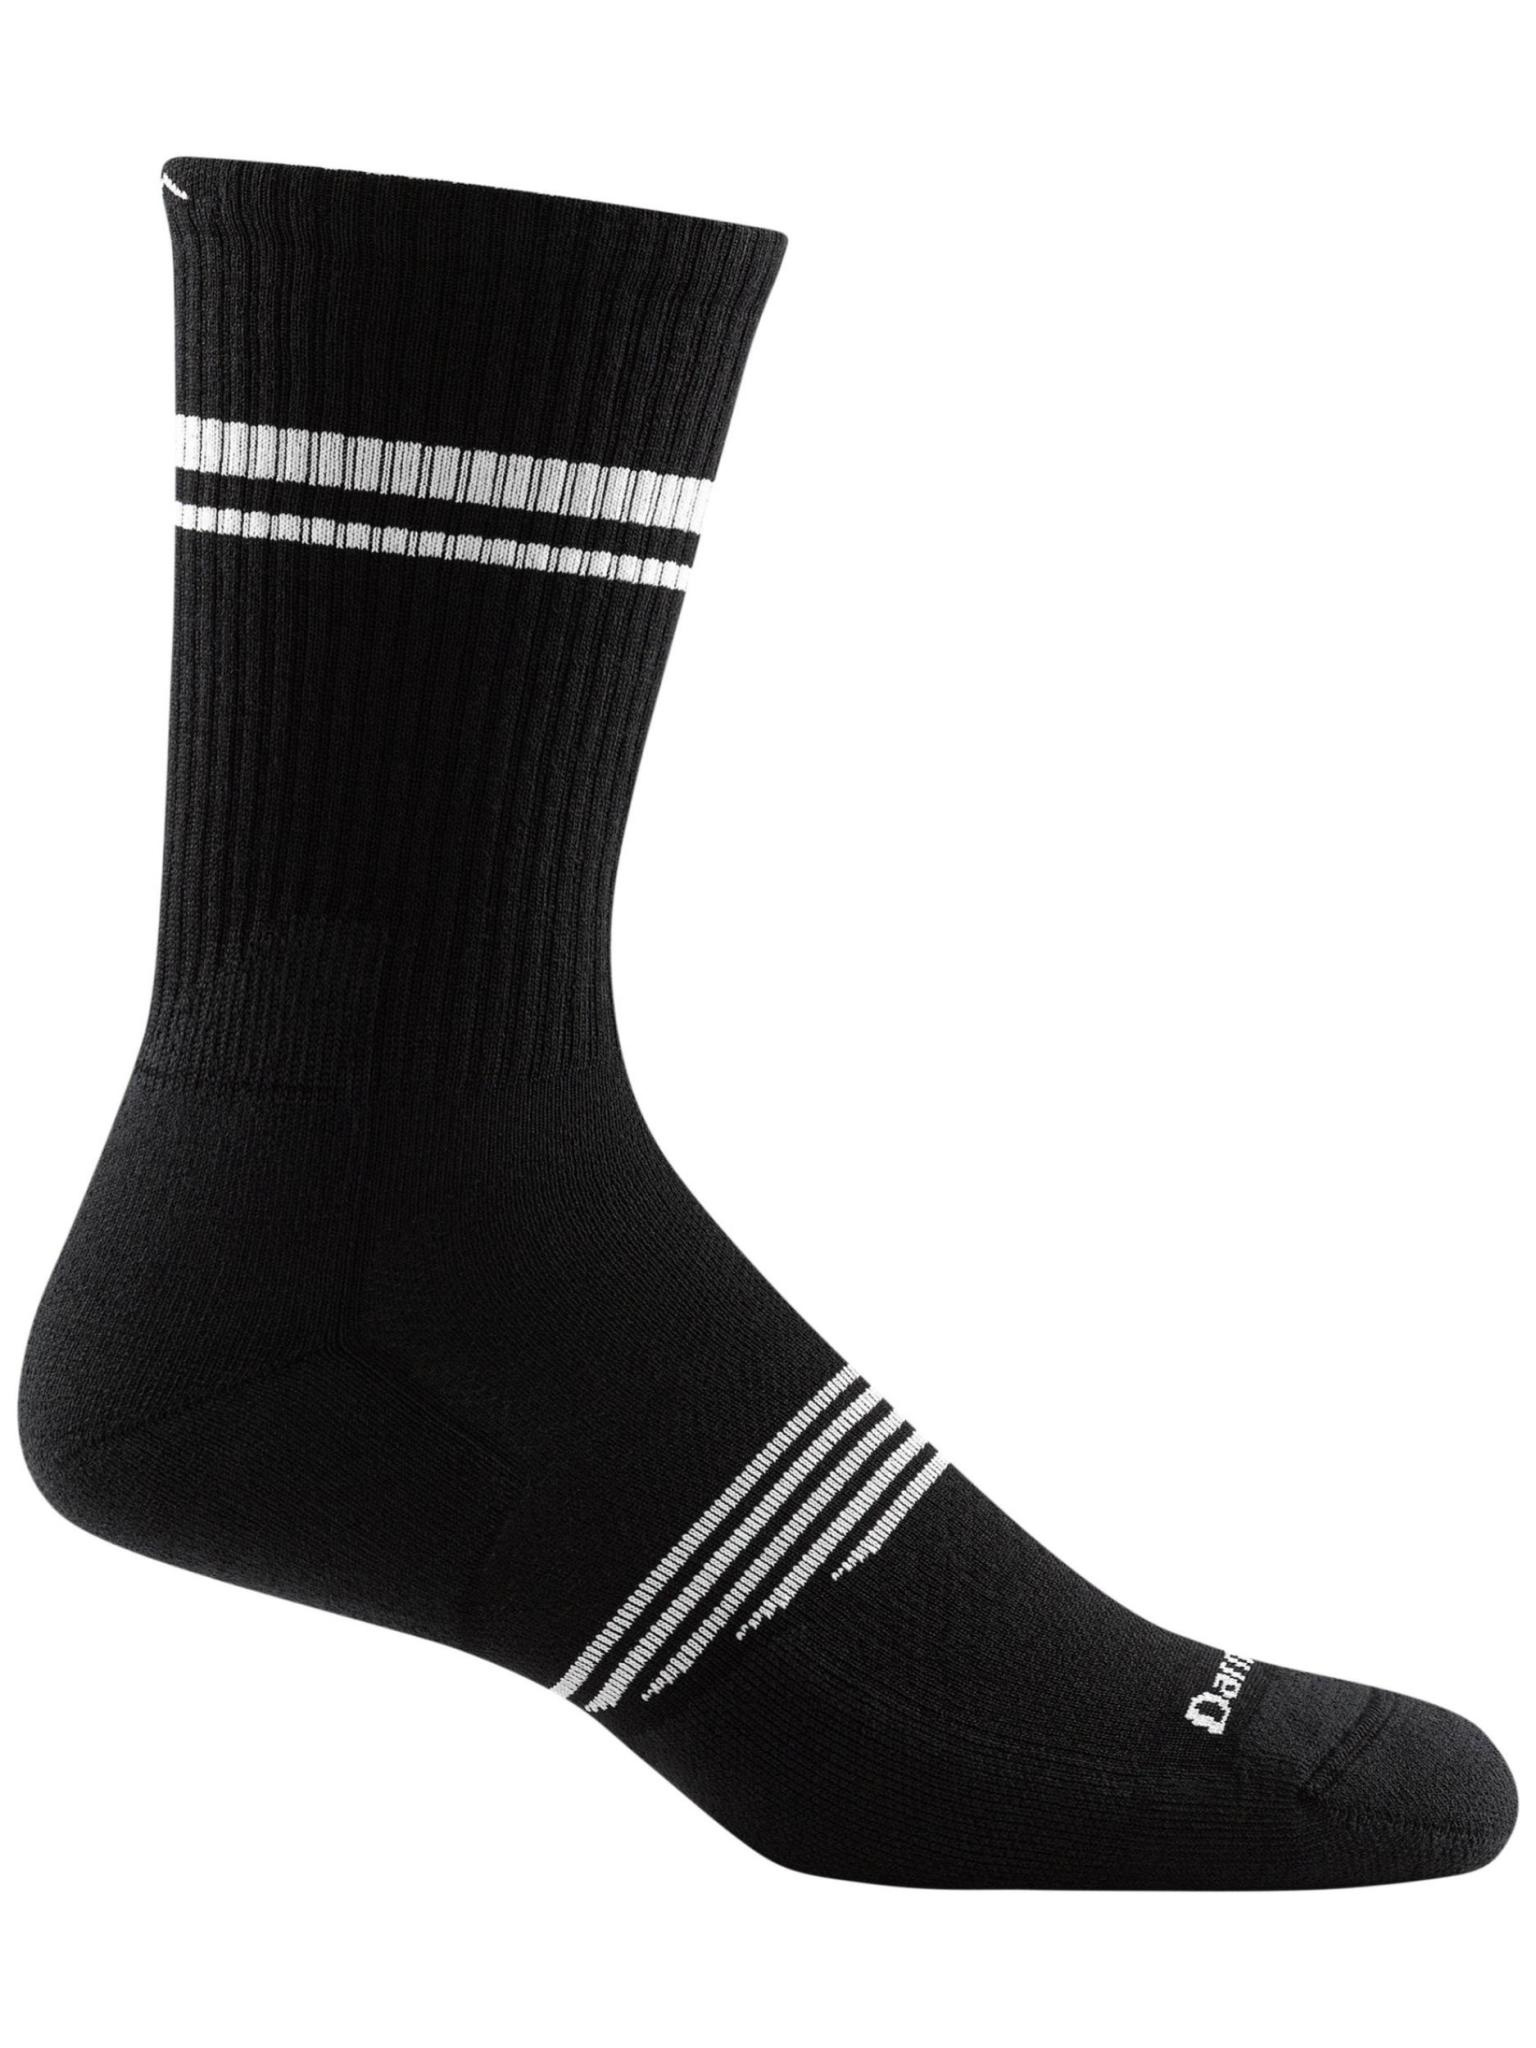 Darn Tough Men's Element Crew Lightweight With Cushion Athletic Sock